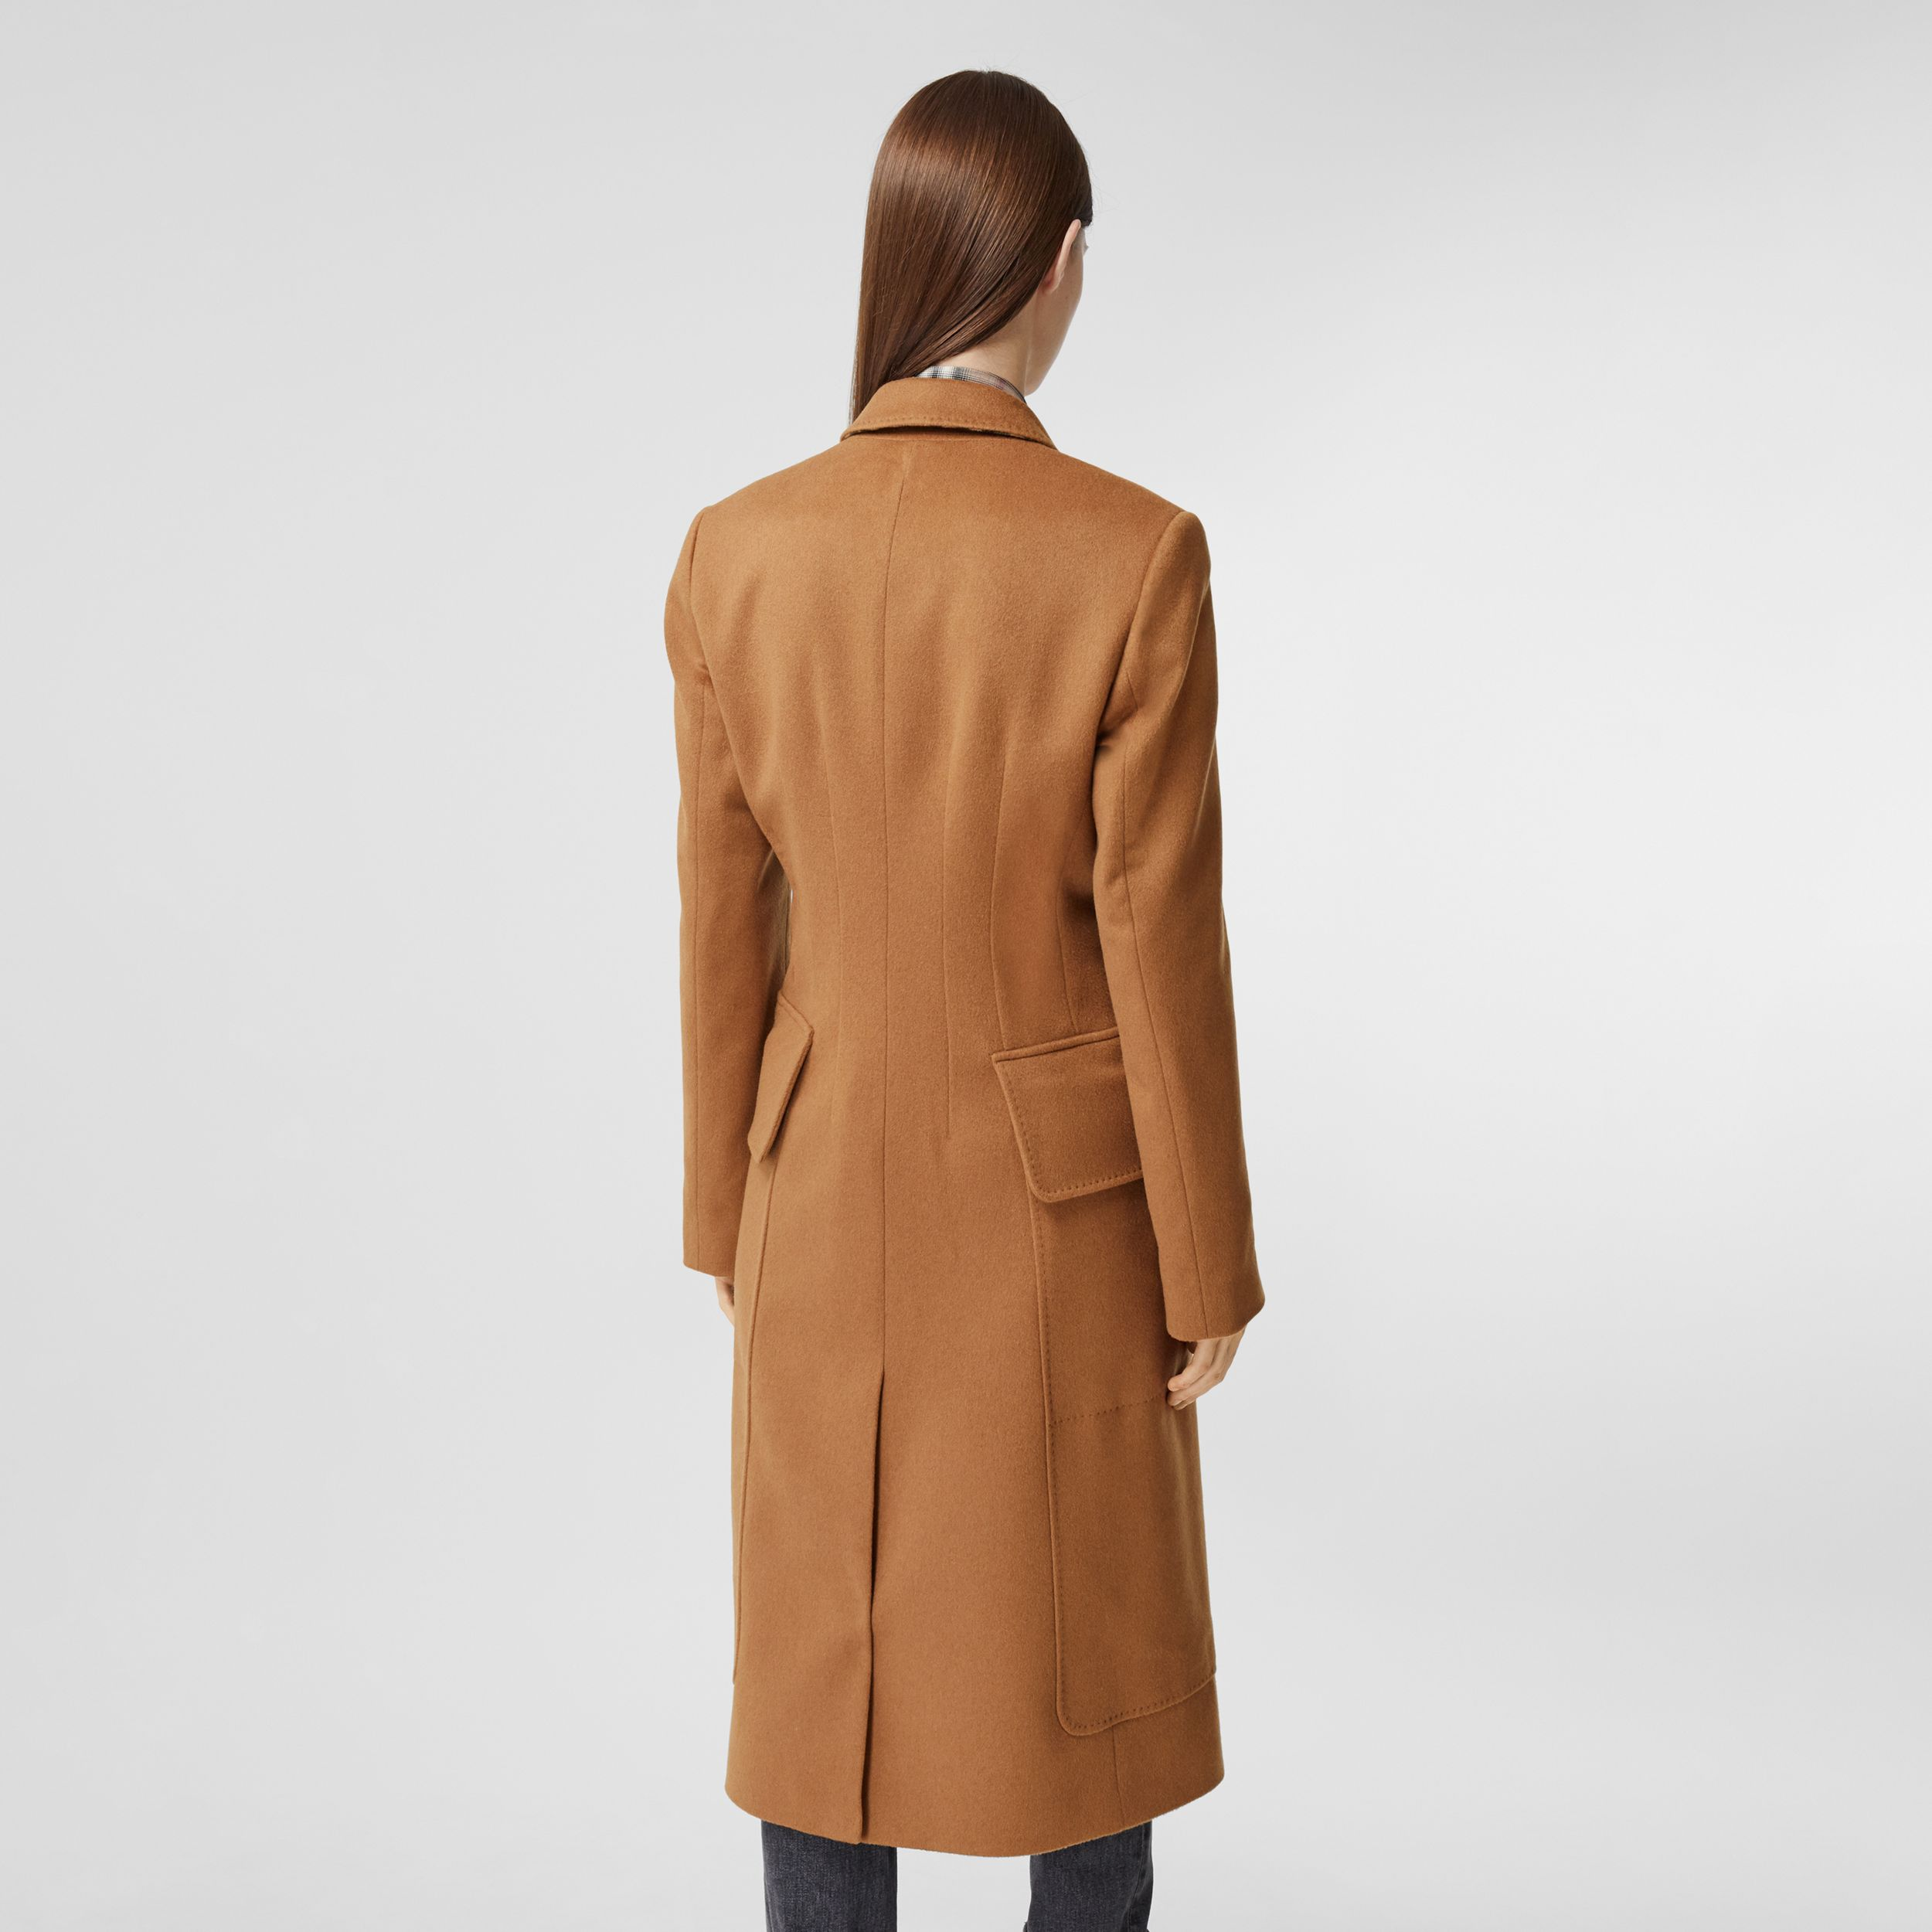 Cashmere Tailored Coat in Bronze - Women | Burberry Australia - 3